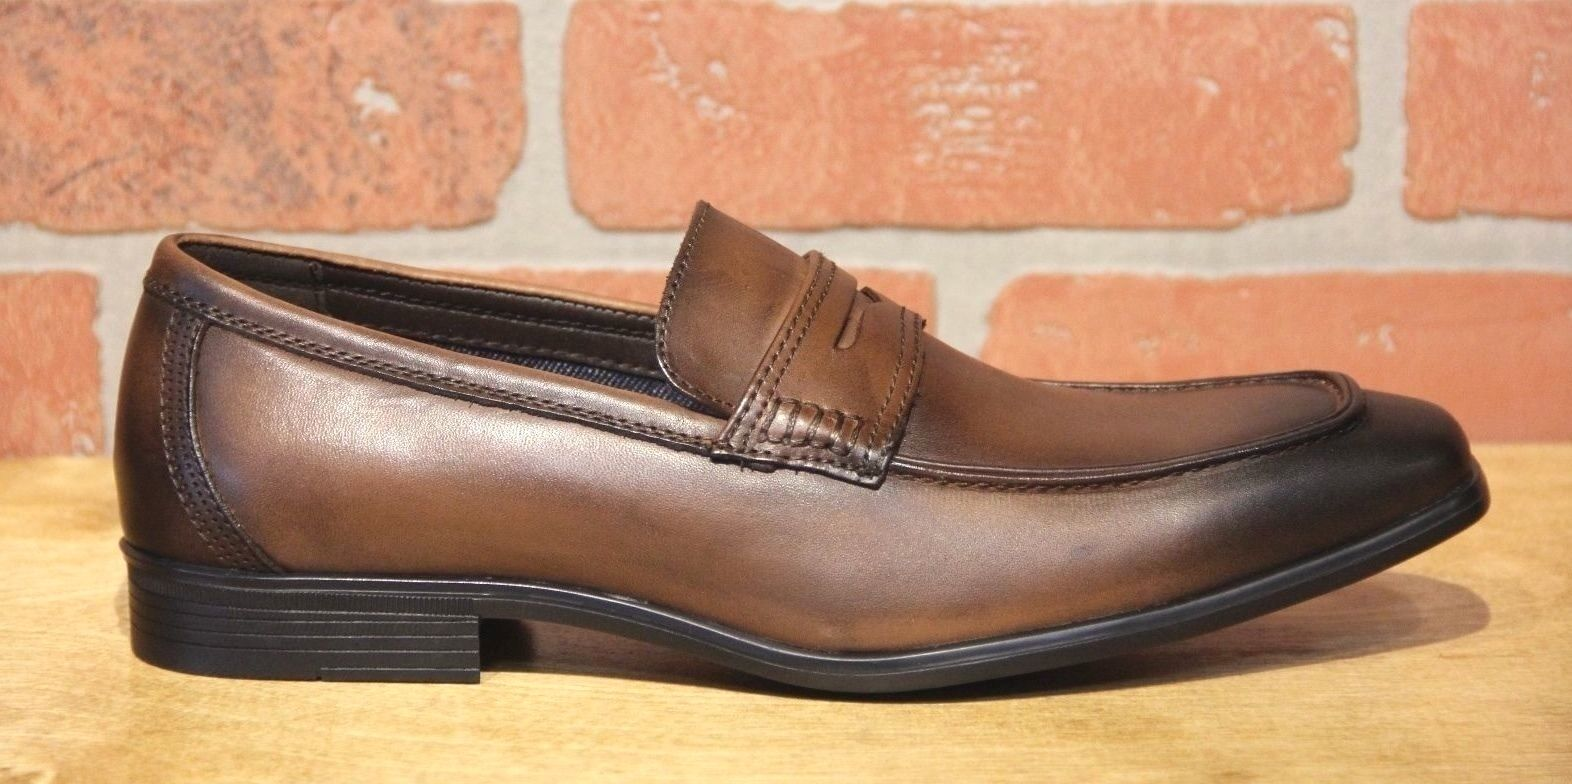 La Milano Men's Brown Leather SLip On Dress Shoes A11233 1